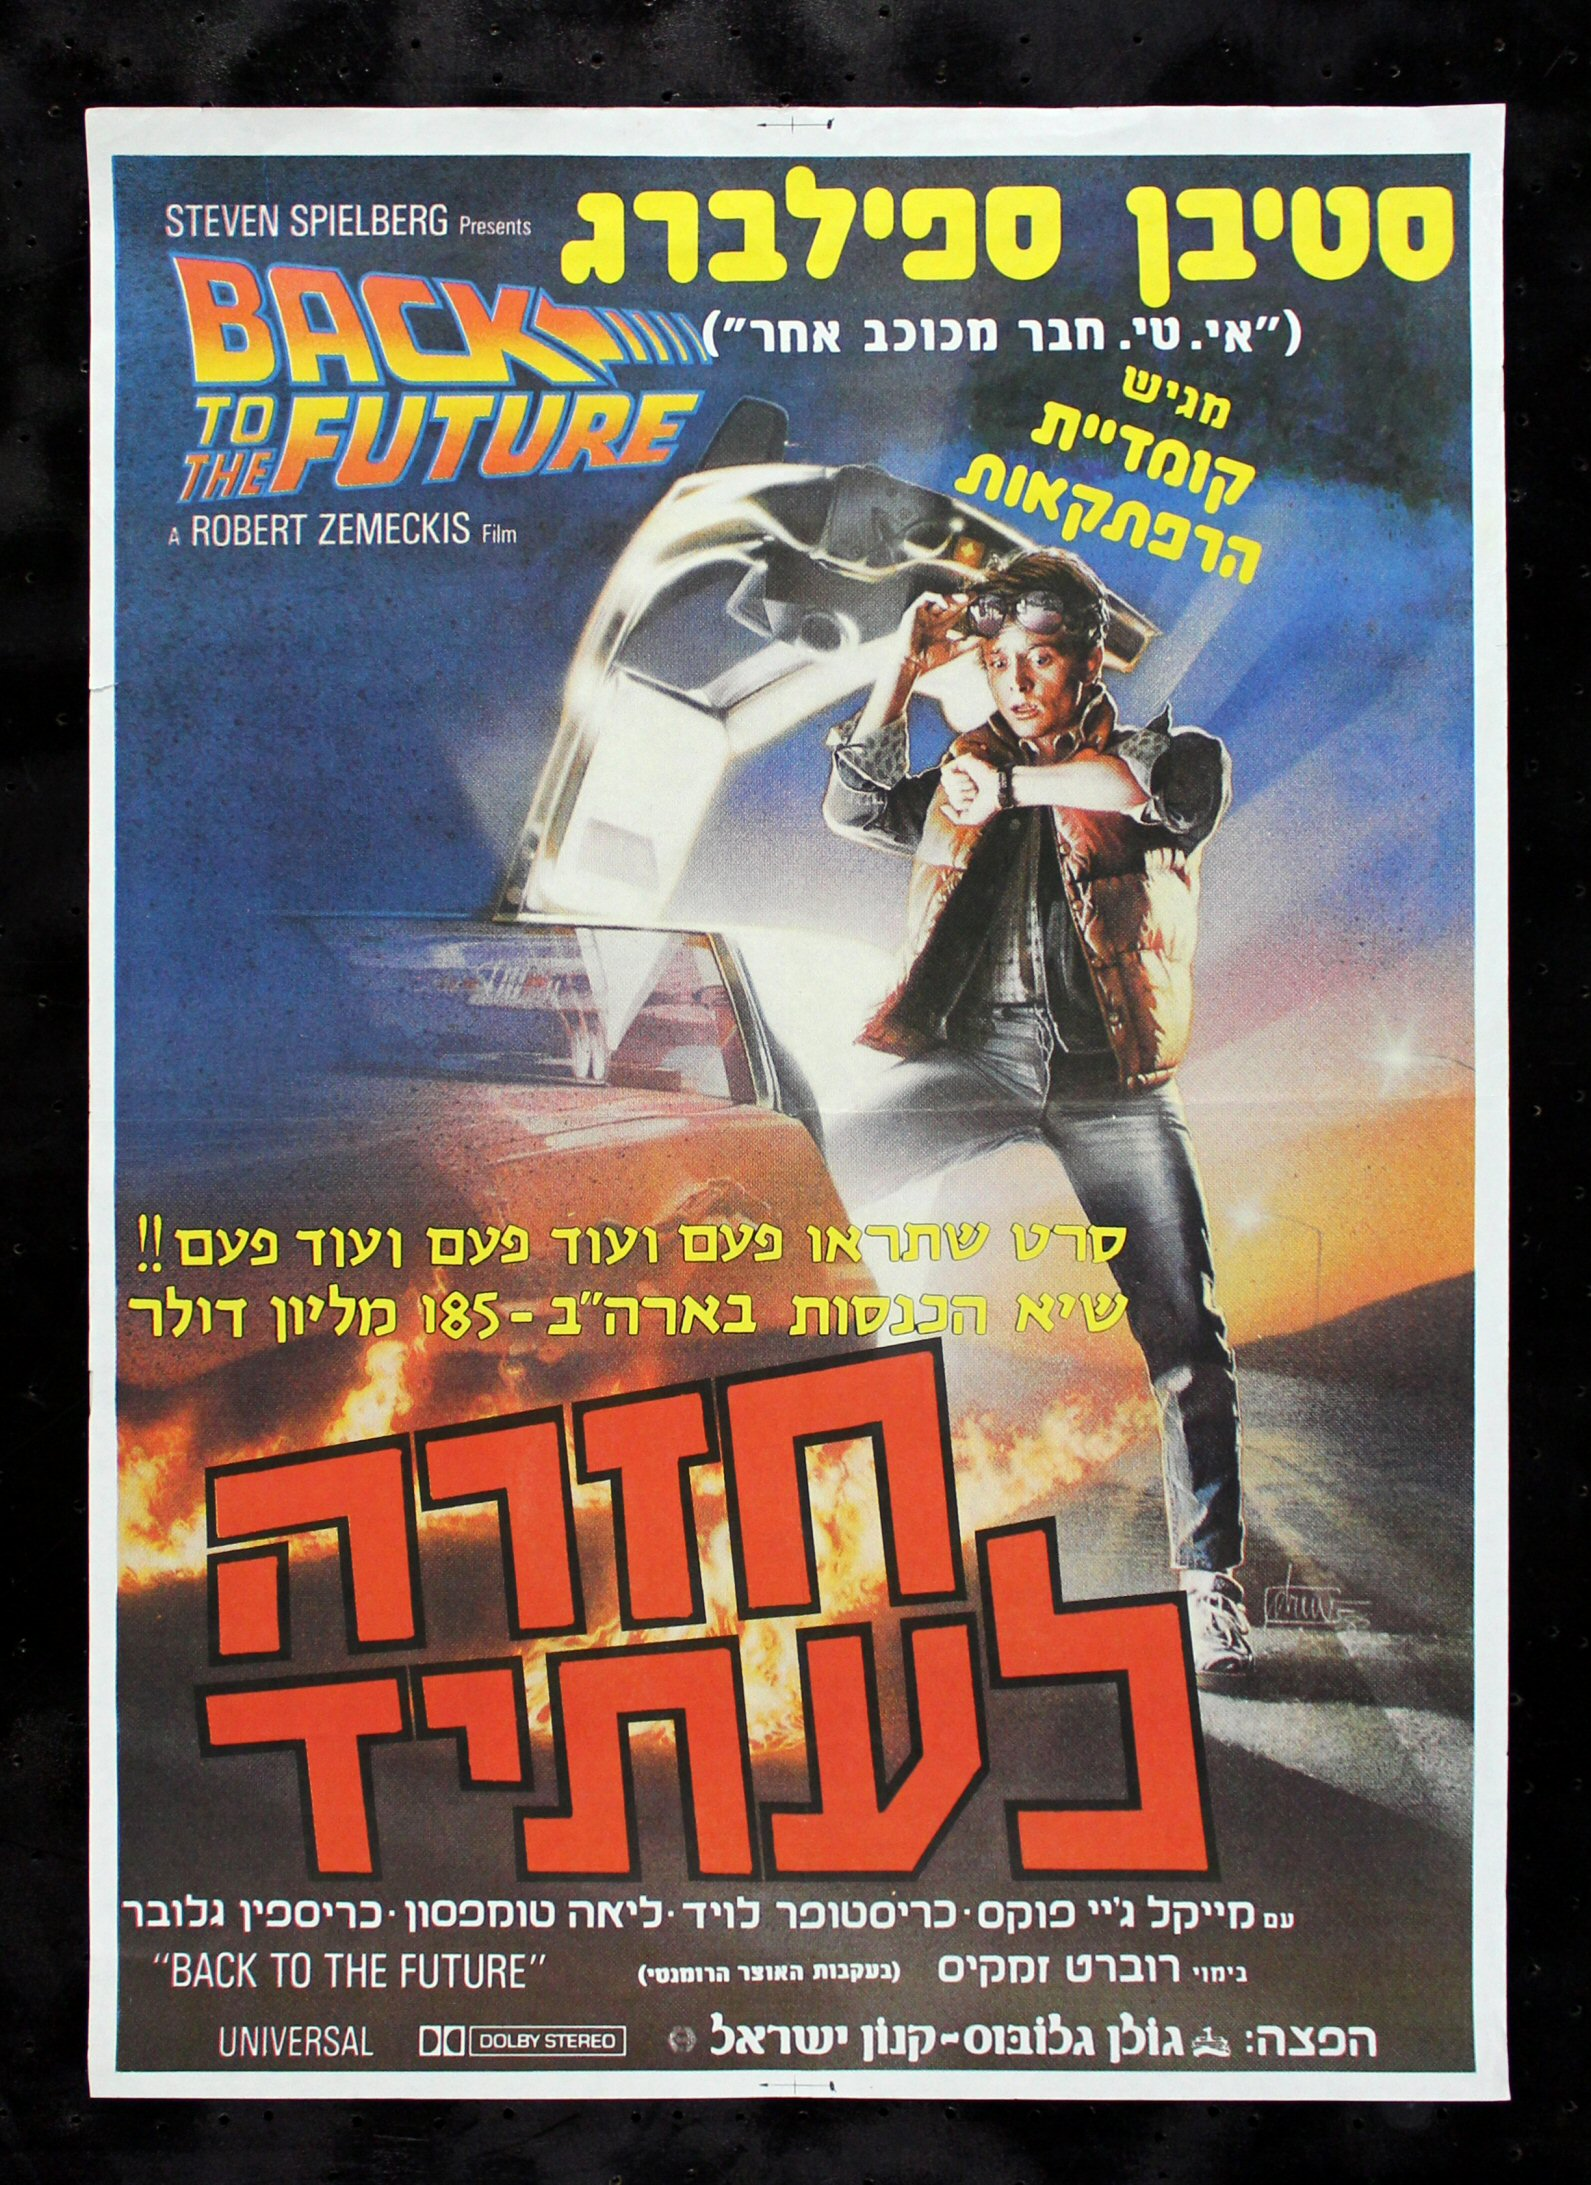 Httpwww Overlordsofchaos Comhtmlorigin Of The Word Jew Html: BACK TO THE FUTURE * CineMasterpieces ISRAEL HEBREW